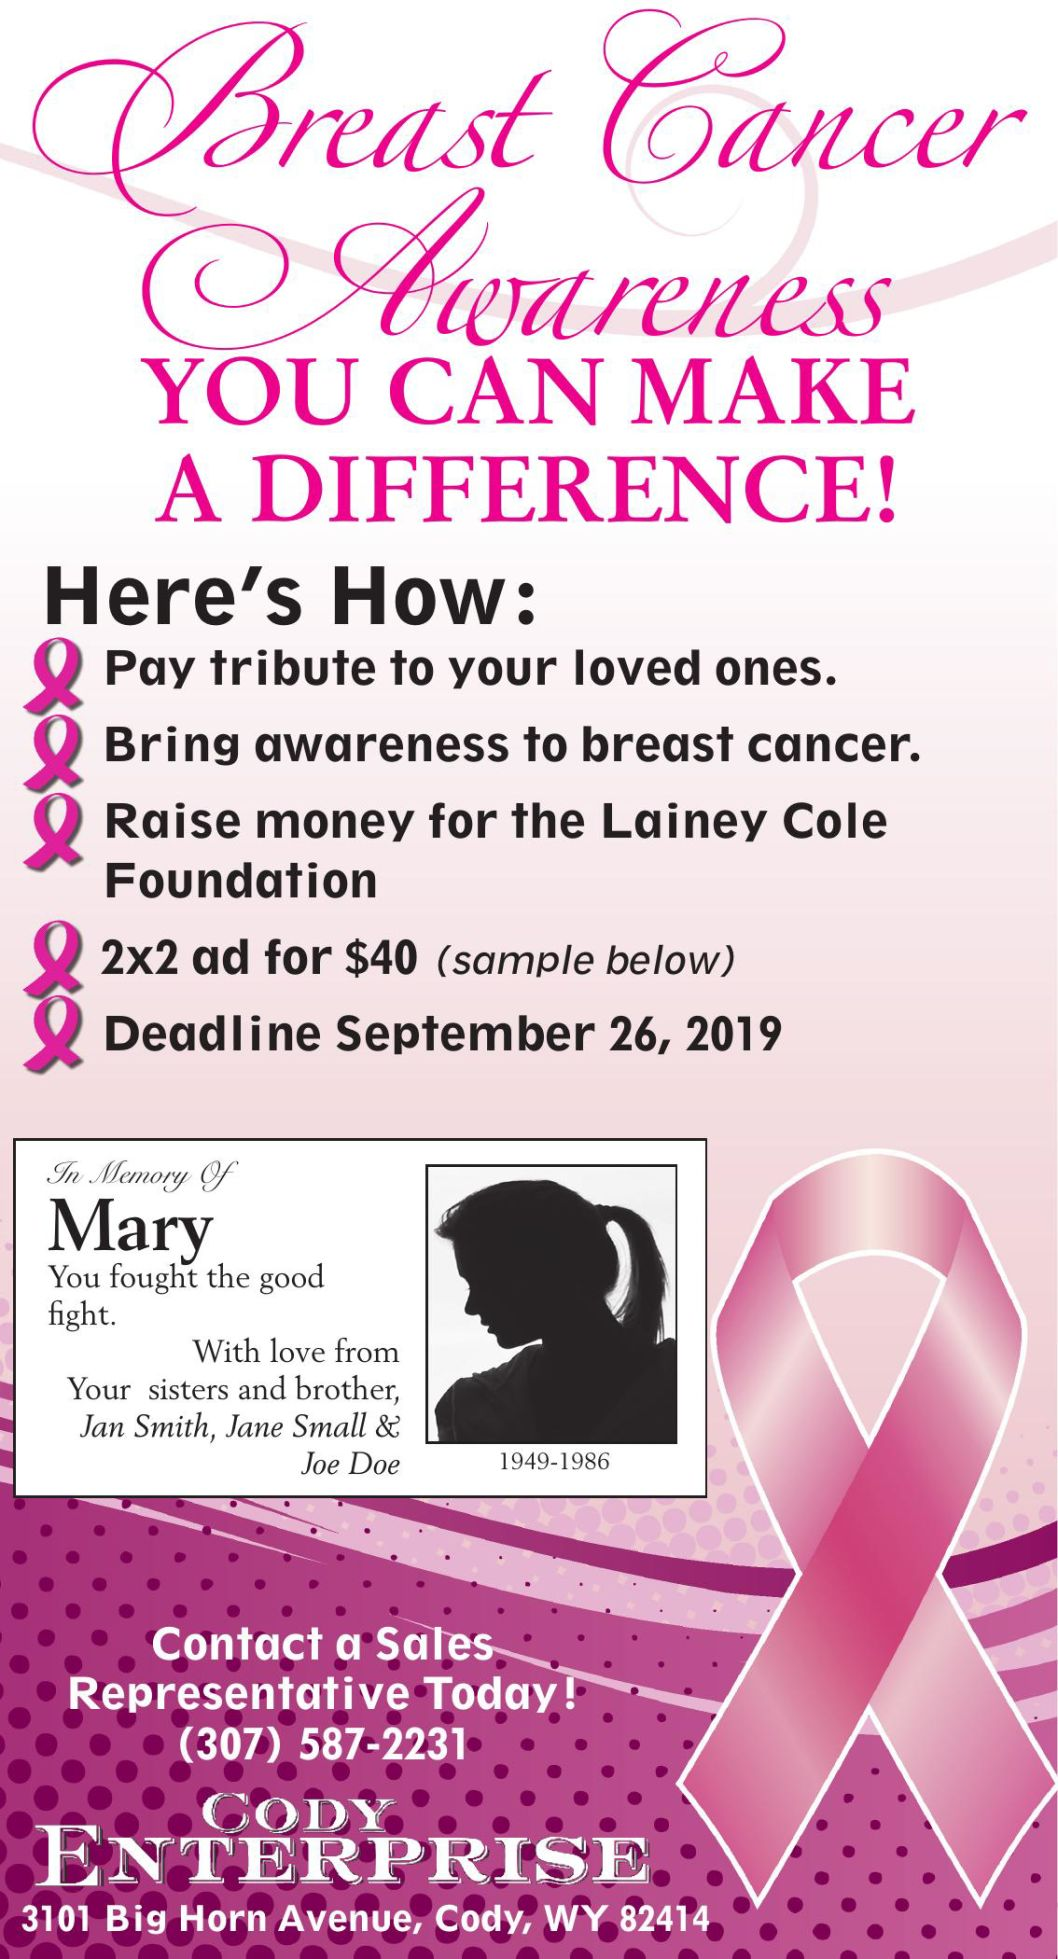 010591_cody_enterprise_breast_cancer_awareness_3x10.5_newspaper